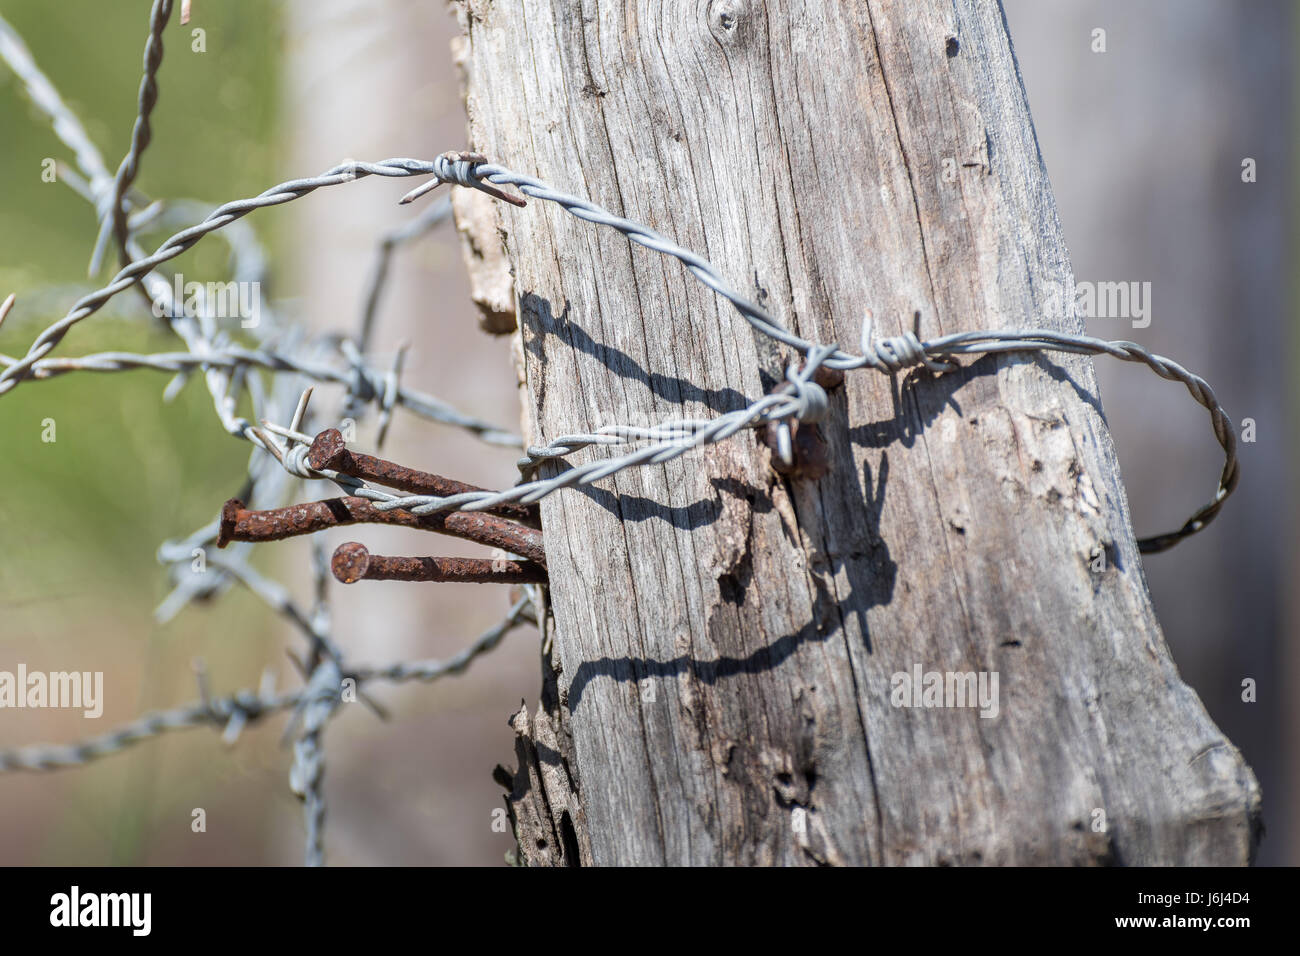 Barbed Wire Fence Post Up Close - Stock Image